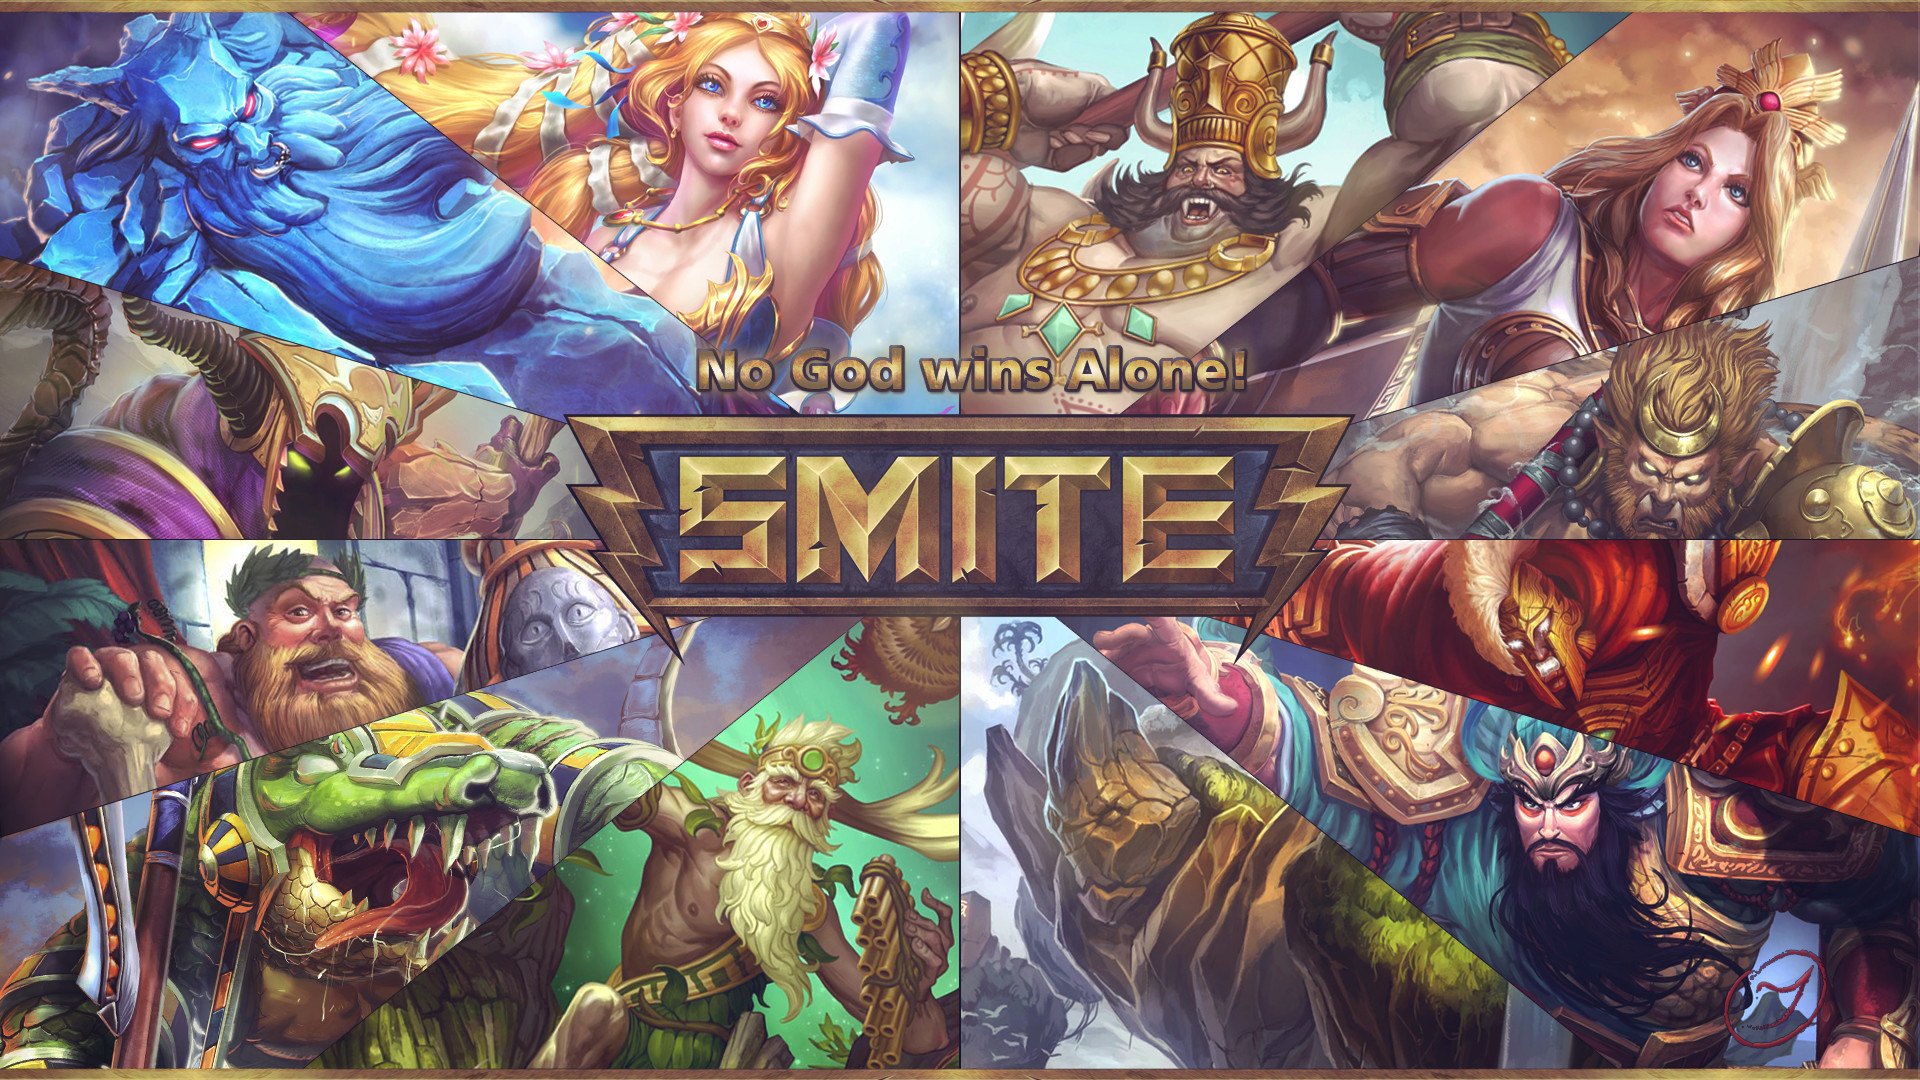 … smite game hd wallpapers wallpapers venue …